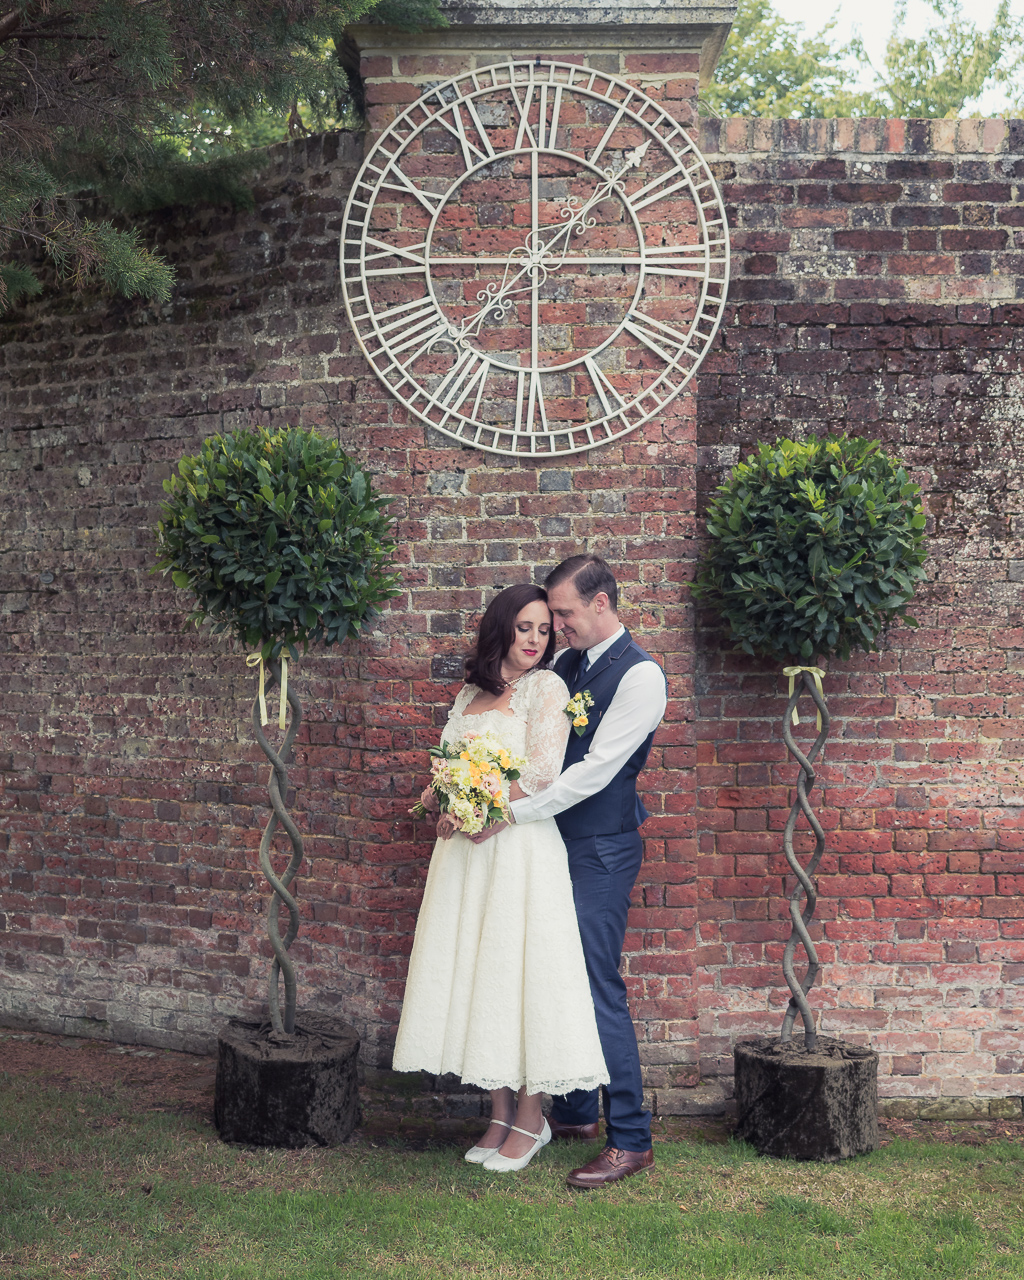 Traditional vintage styled wedding photoshoot at The Orangery Suite, photographer credit Dom Brenton Photography (14)